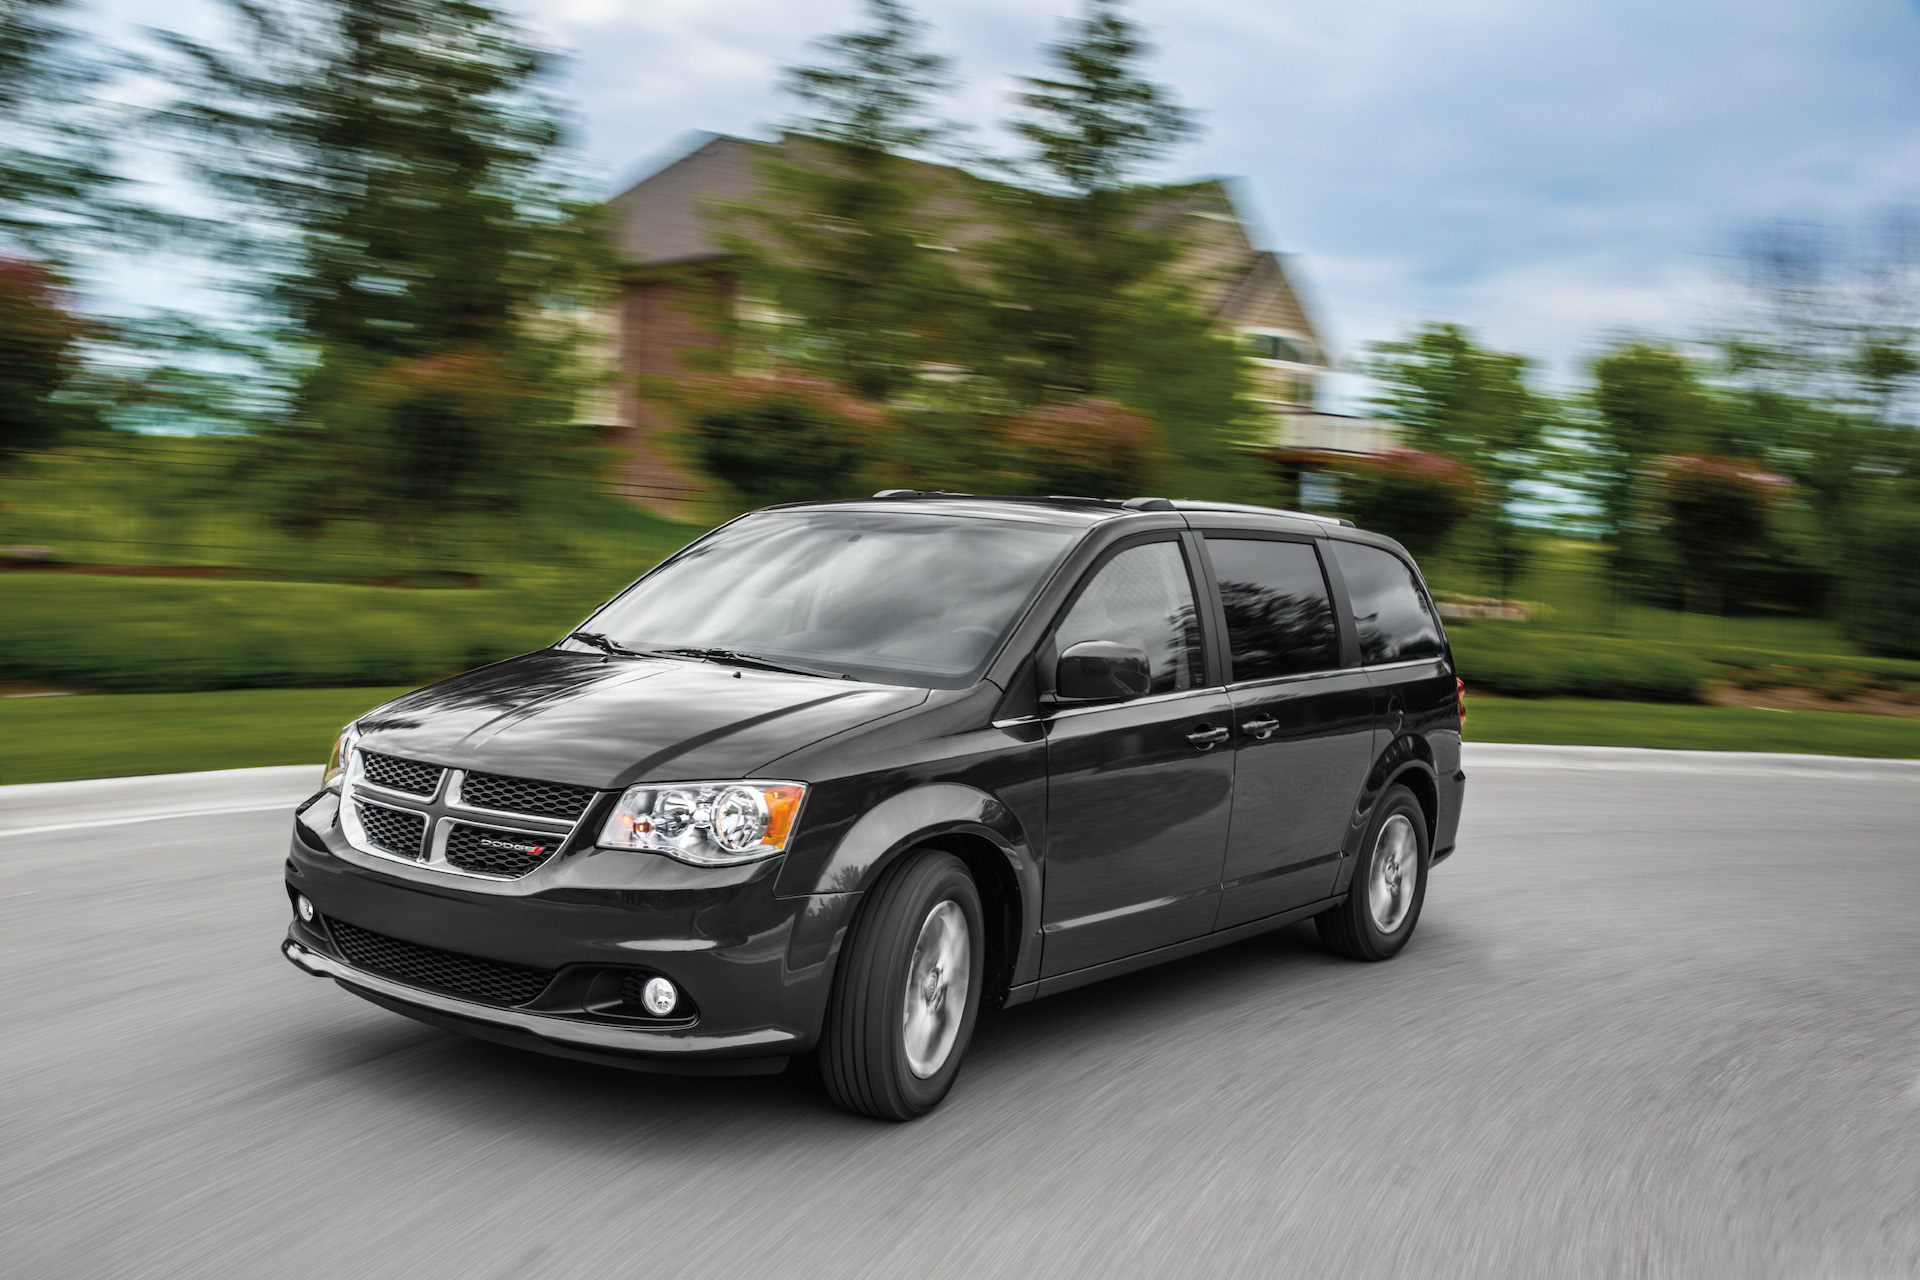 2020 Dodge Caravan Exterior and Interior